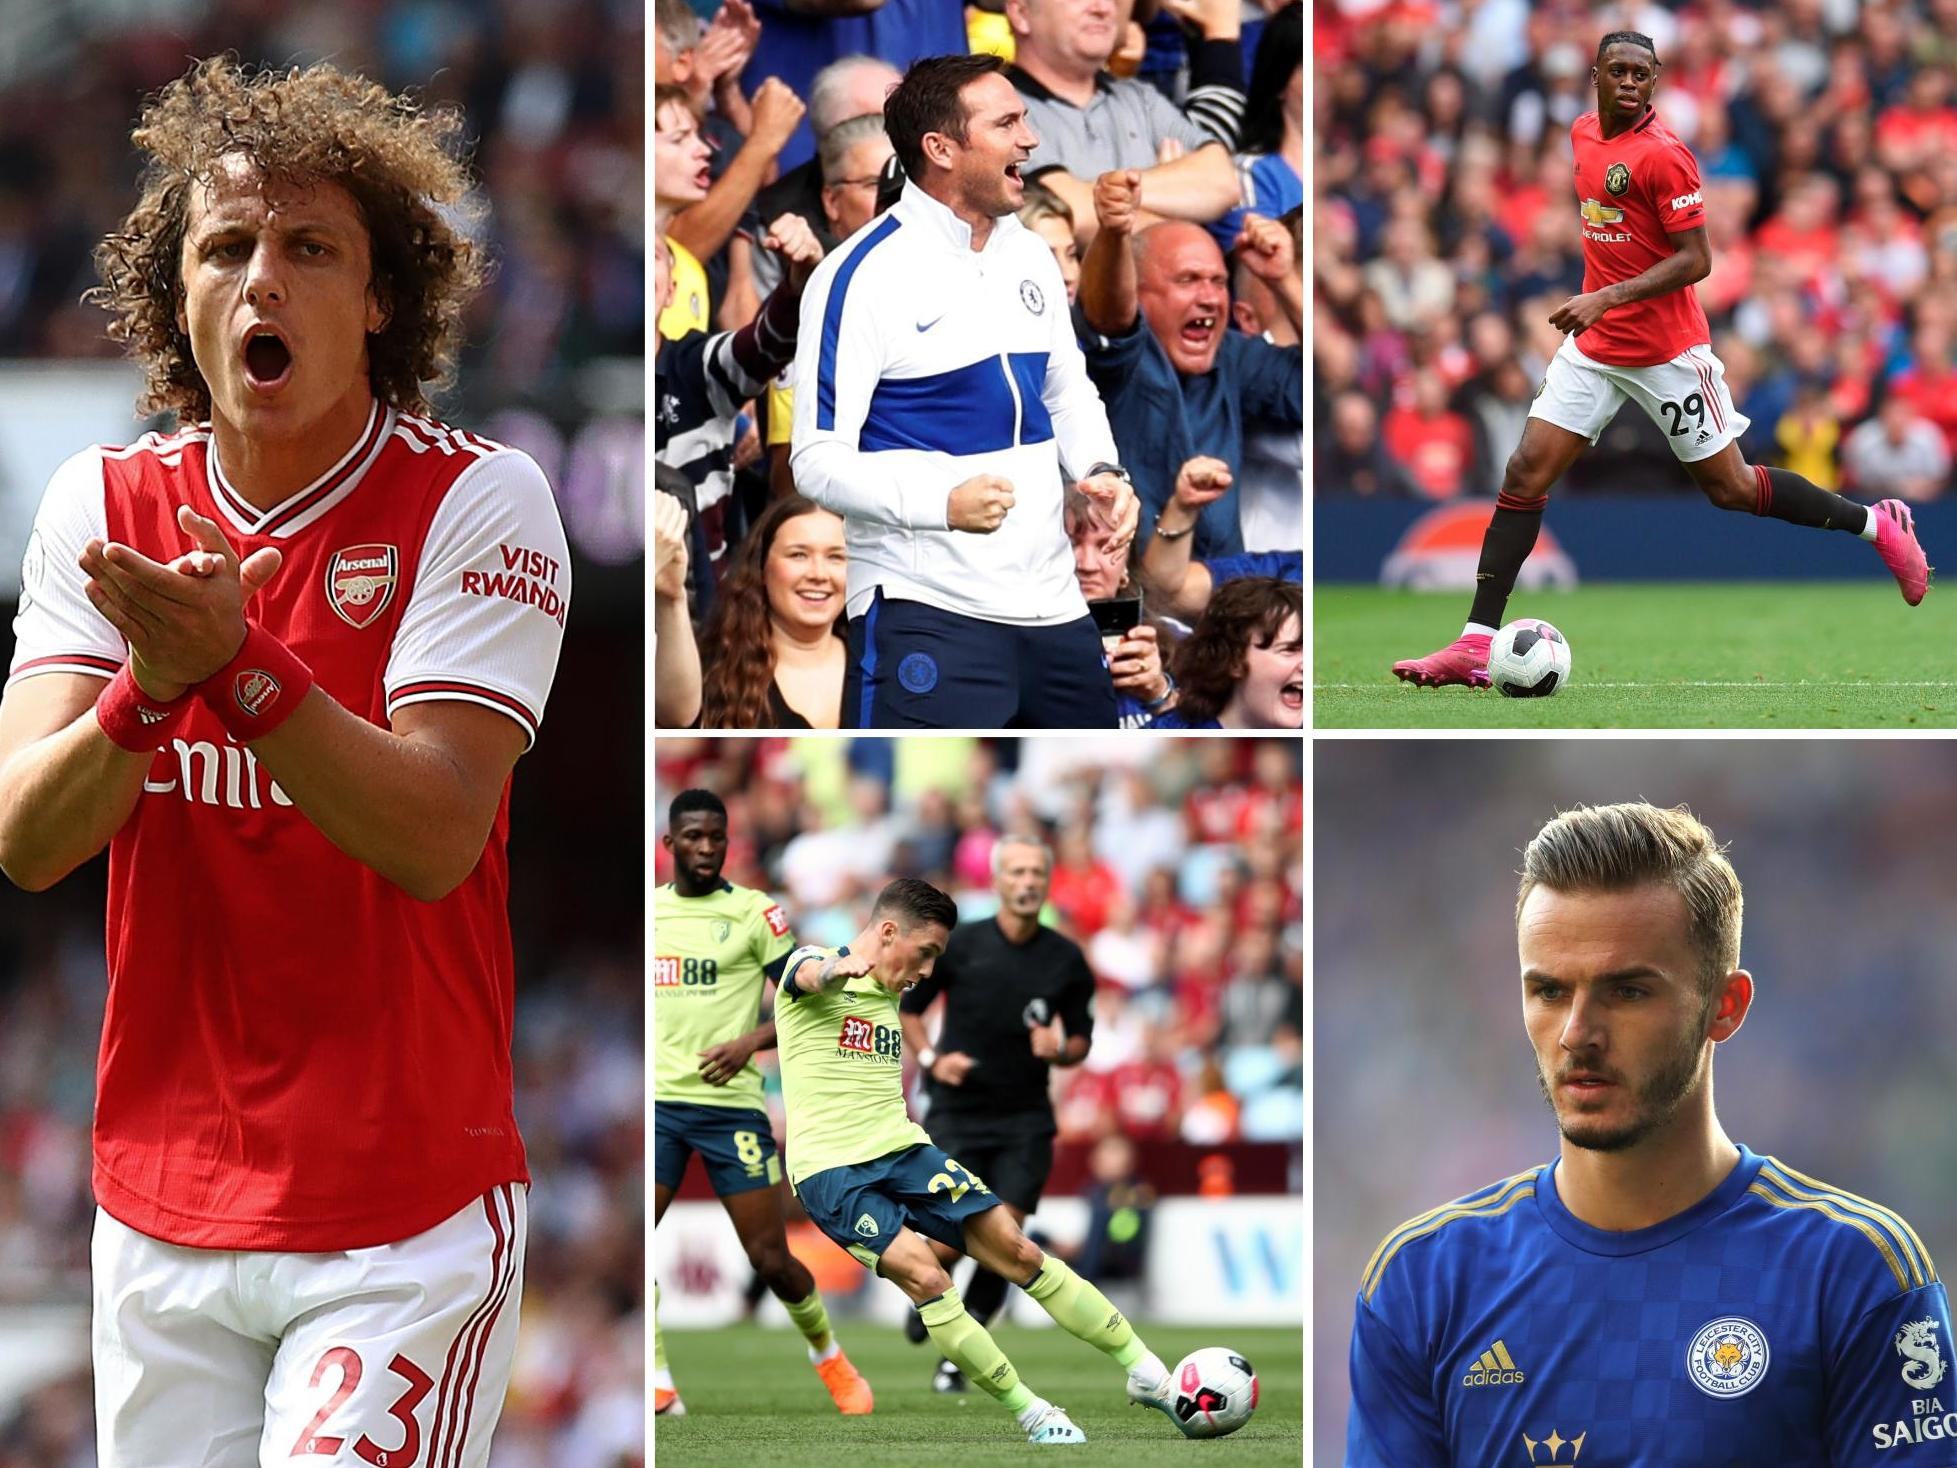 Premier League: 10 talking points this weekend from Arsenal's Liverpool leak to Wan-Bissaka's United test